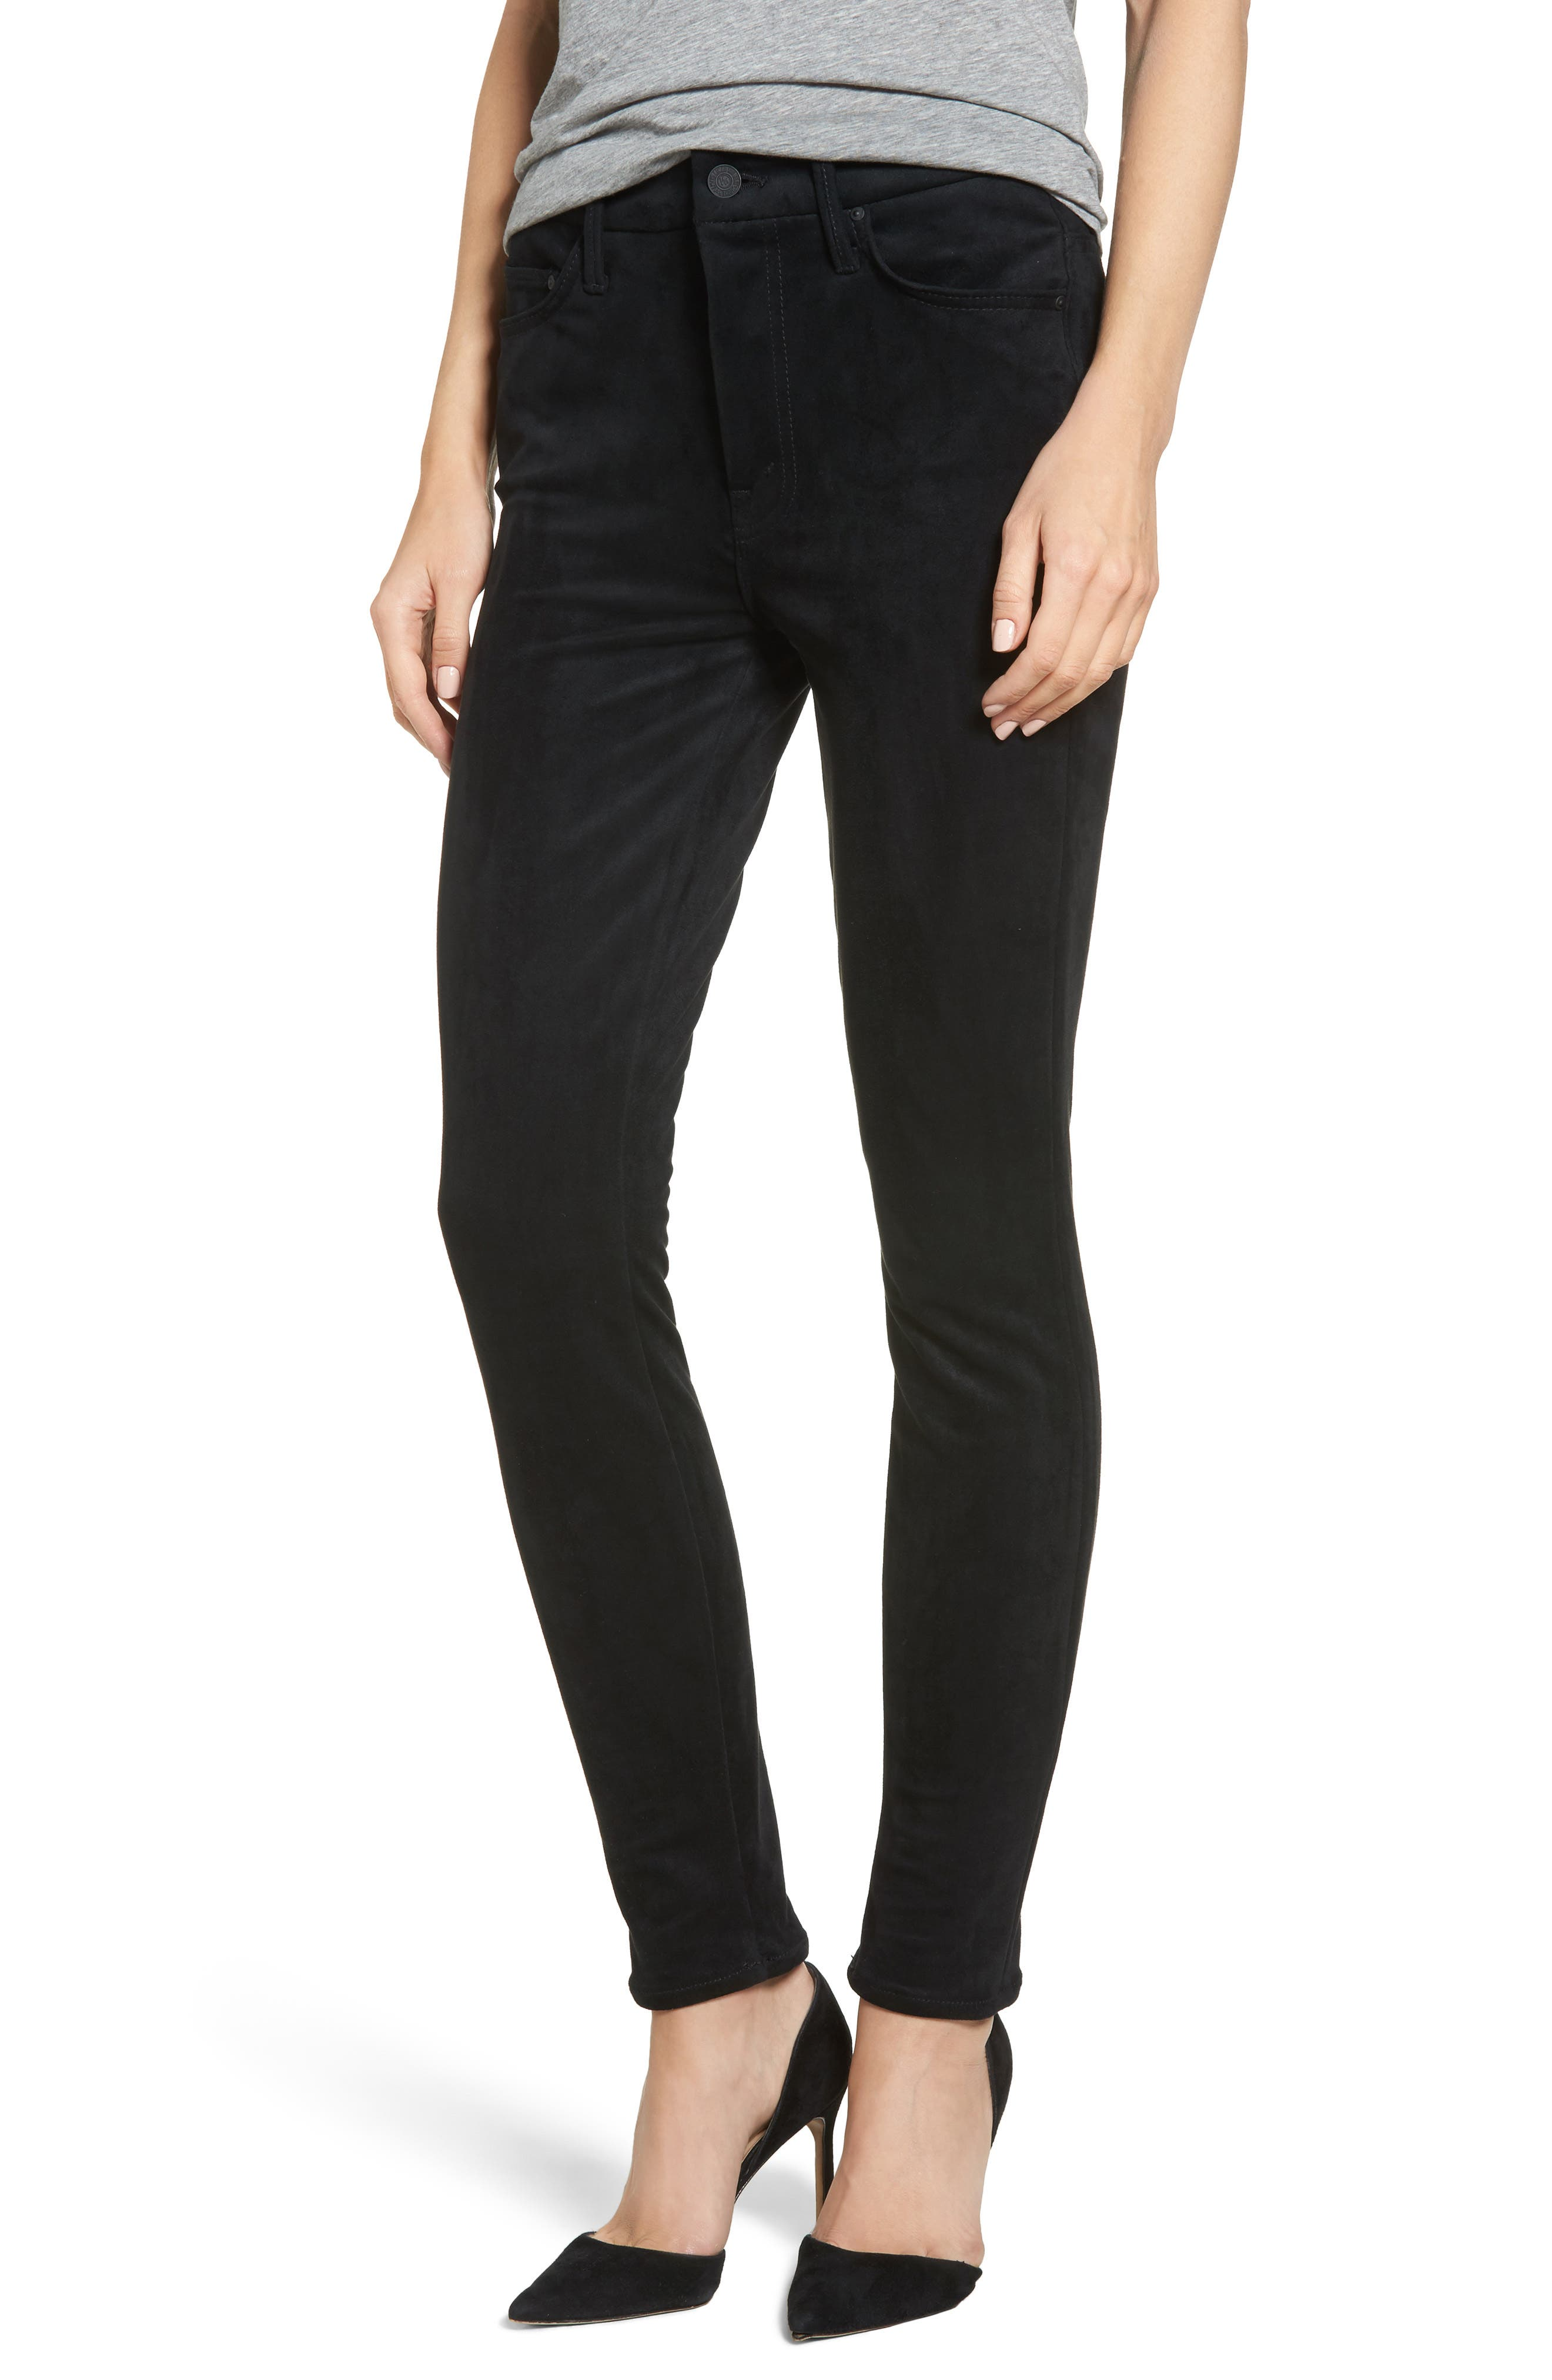 Alternate Image 1 Selected - MOTHER The Looker High Waist Ankle Skinny Jeans (Tricks of the Trade)